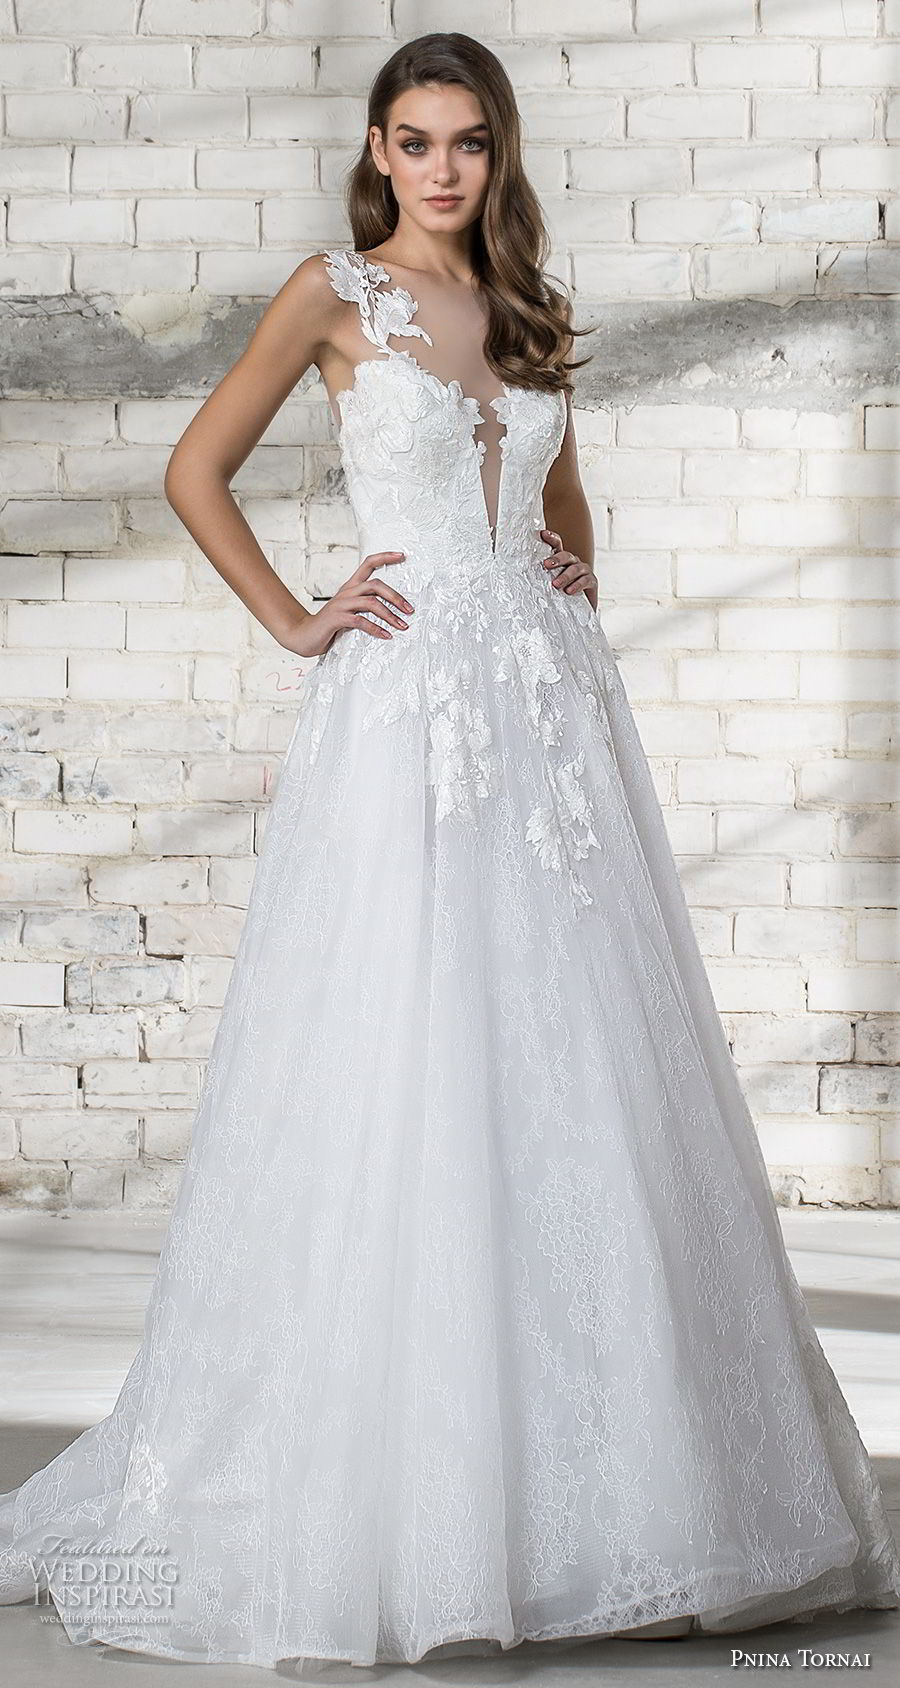 pnina tornai 2019 love bridal sleeveless thick strap plunging sweetheart neckline heavily embellised bodice romantic a line wedding dress sheer button back chapel train (11) mv